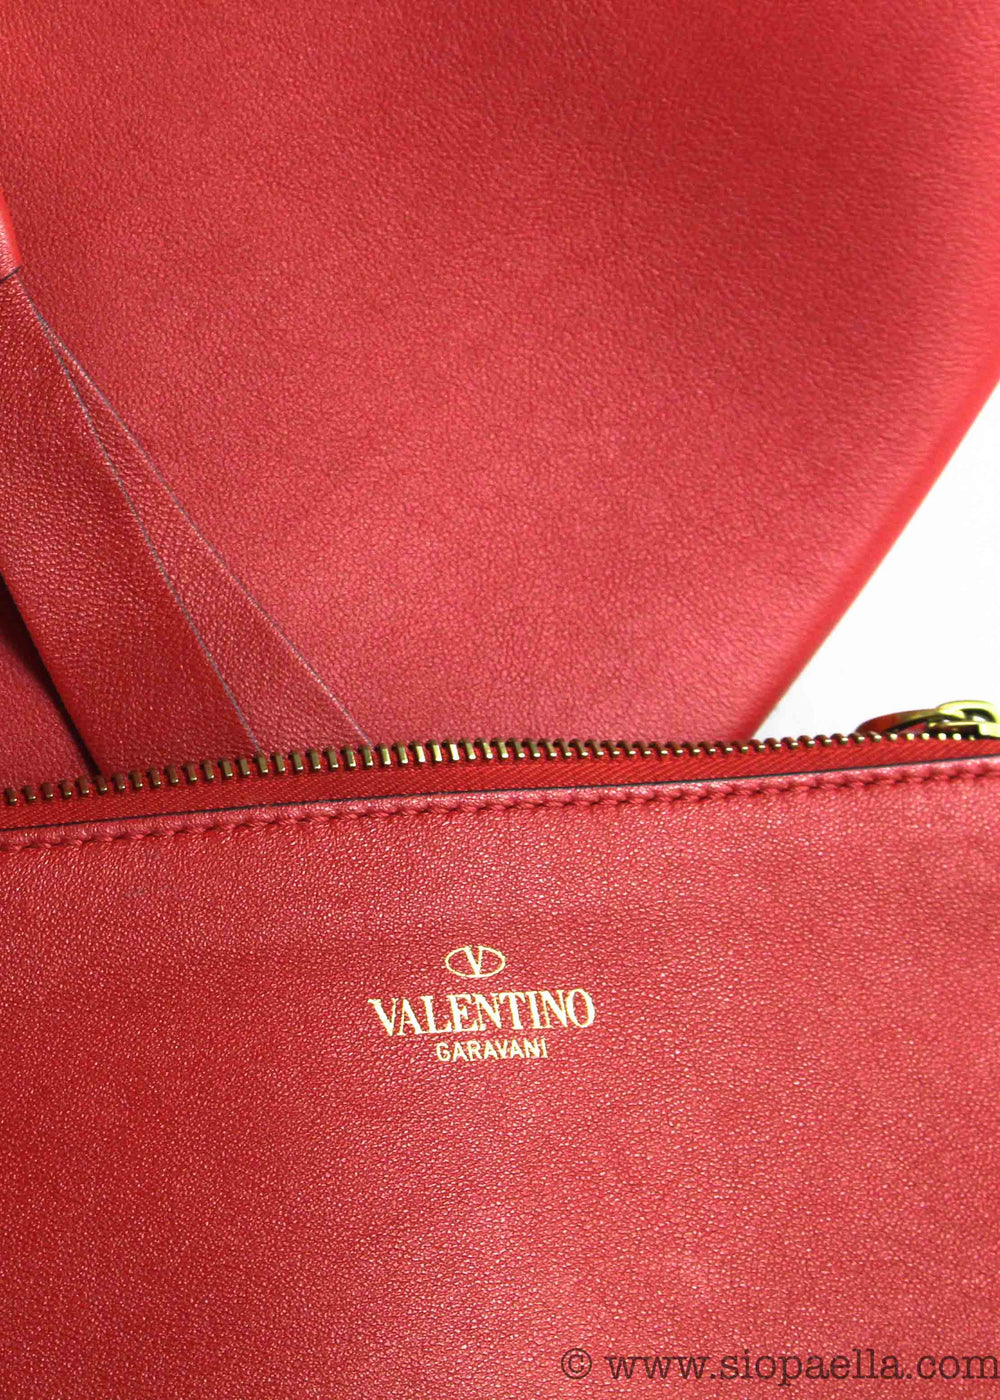 Valentino V Ring Large Tote - Siopaella Designer Exchange